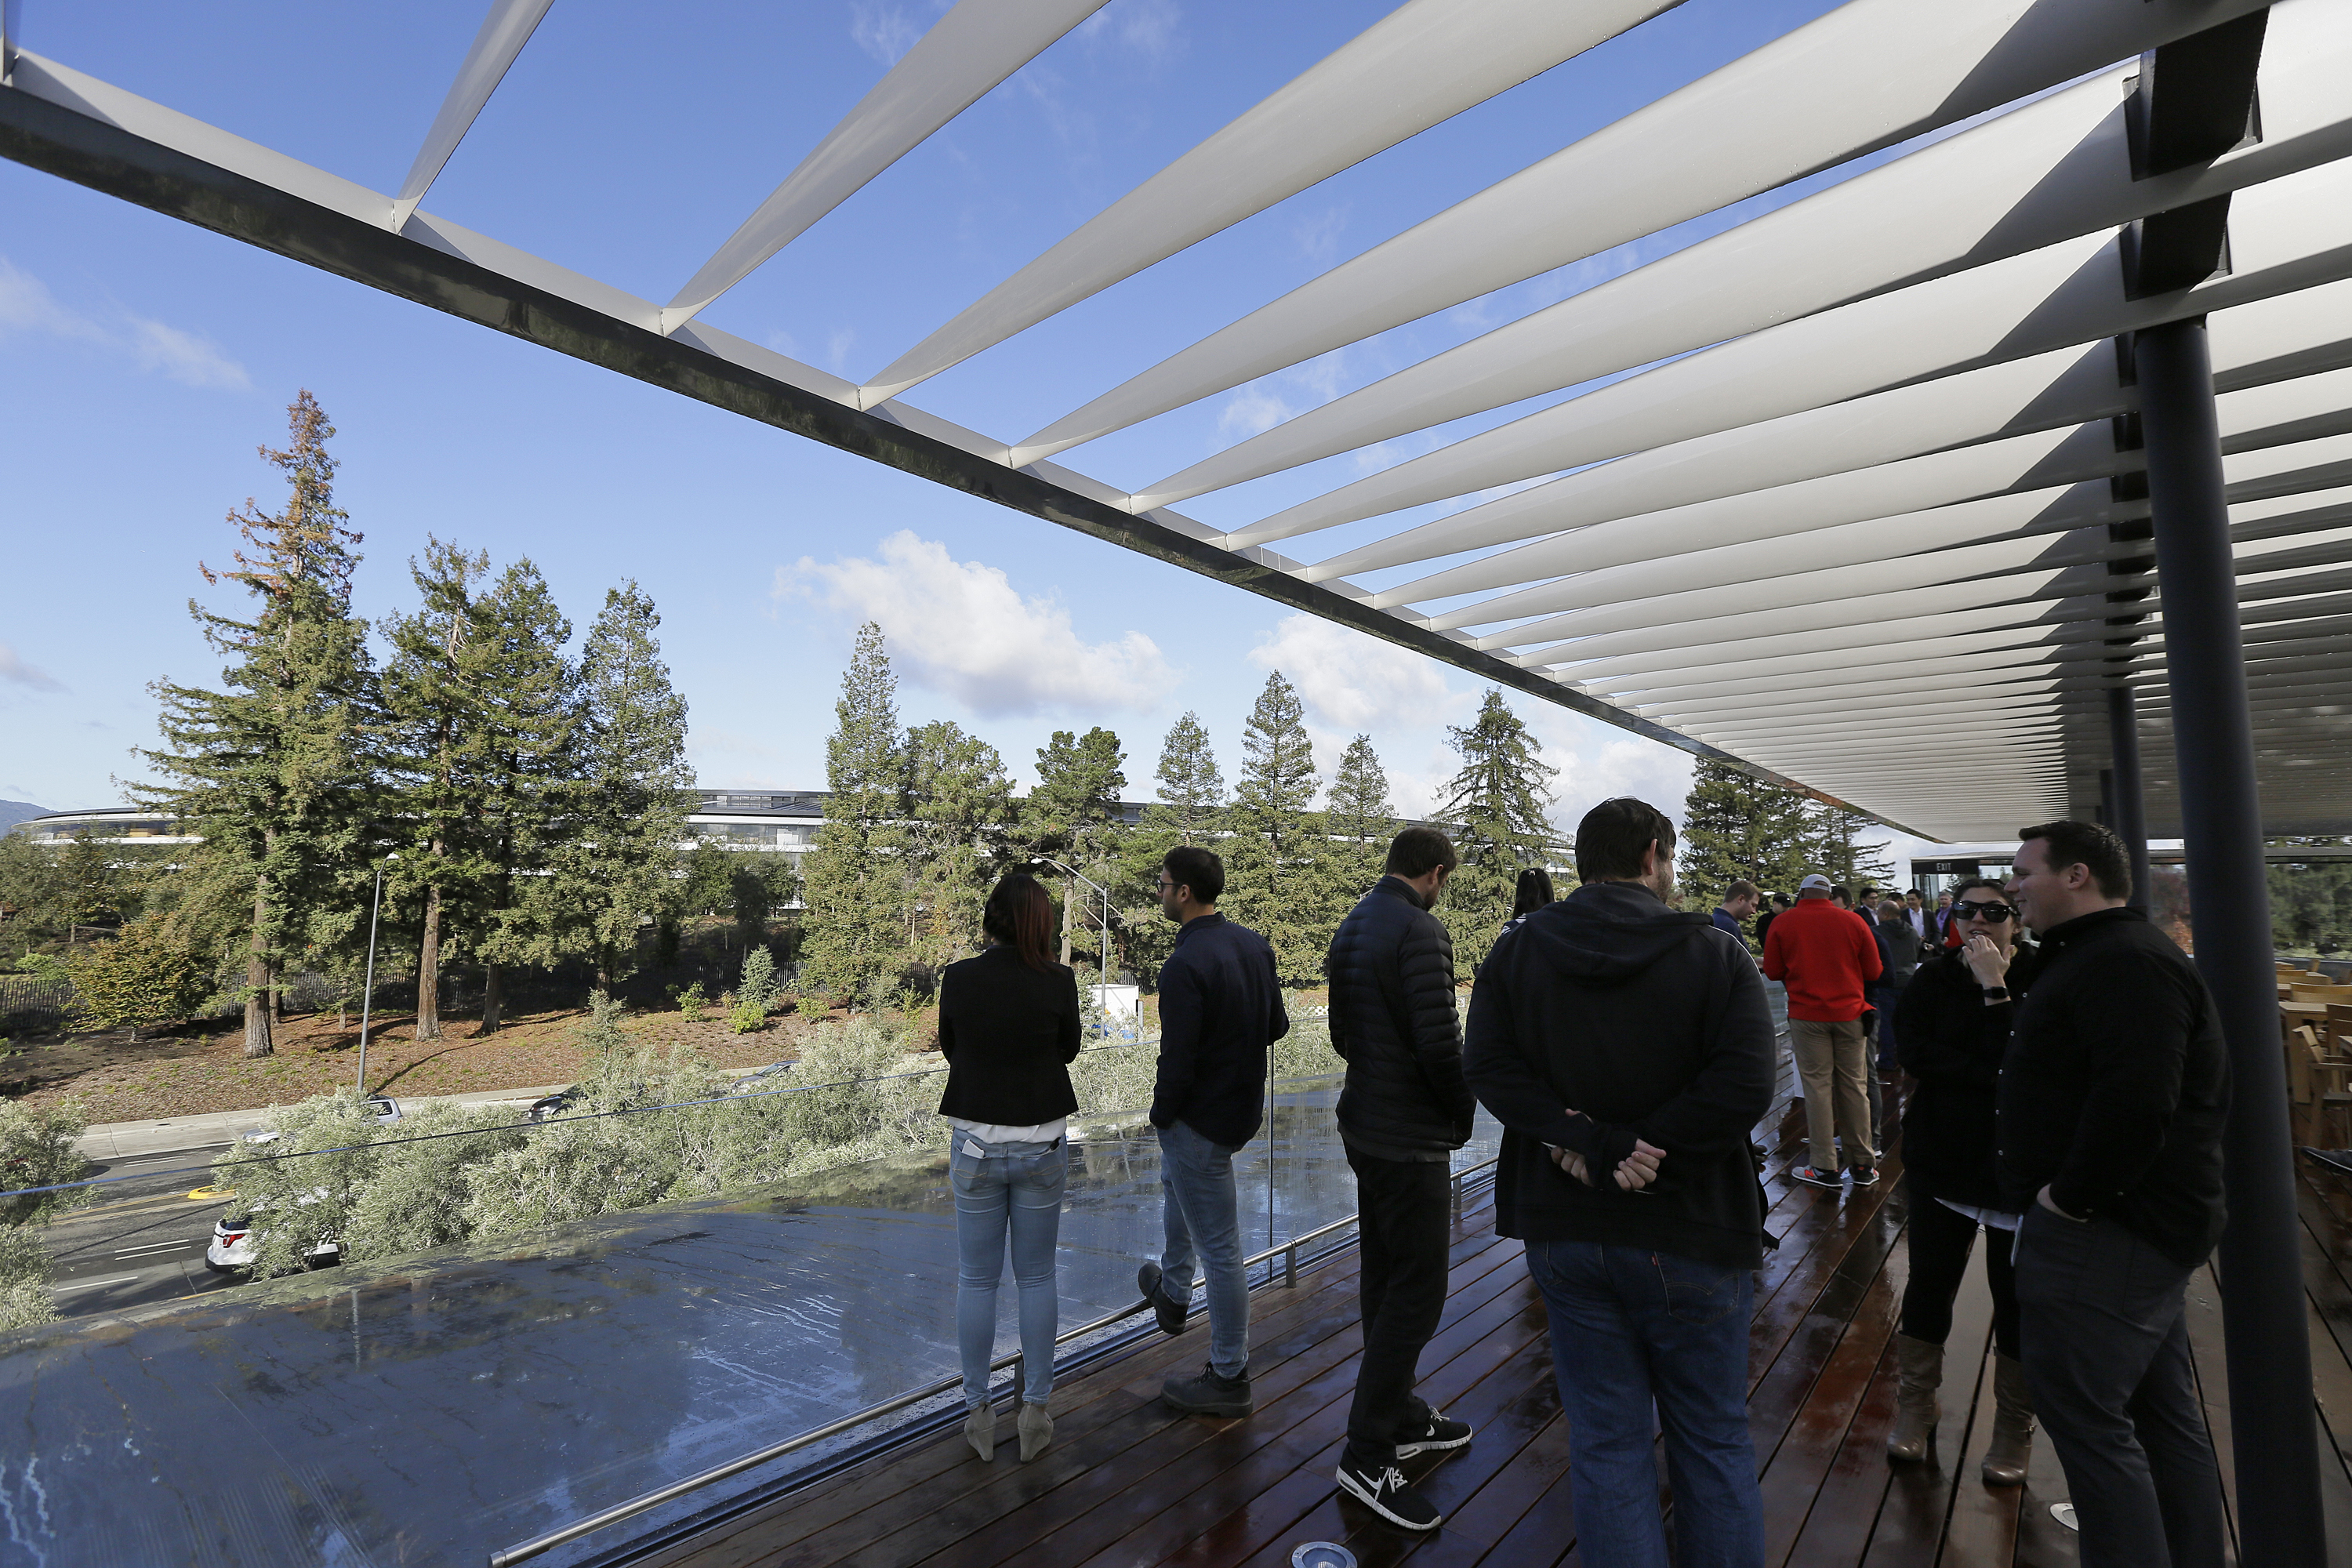 <div class='meta'><div class='origin-logo' data-origin='none'></div><span class='caption-text' data-credit='AP'>People stand on a rooftop terrace with the main building in the background during the grand opening of the Apple Park Visitor Center.</span></div>